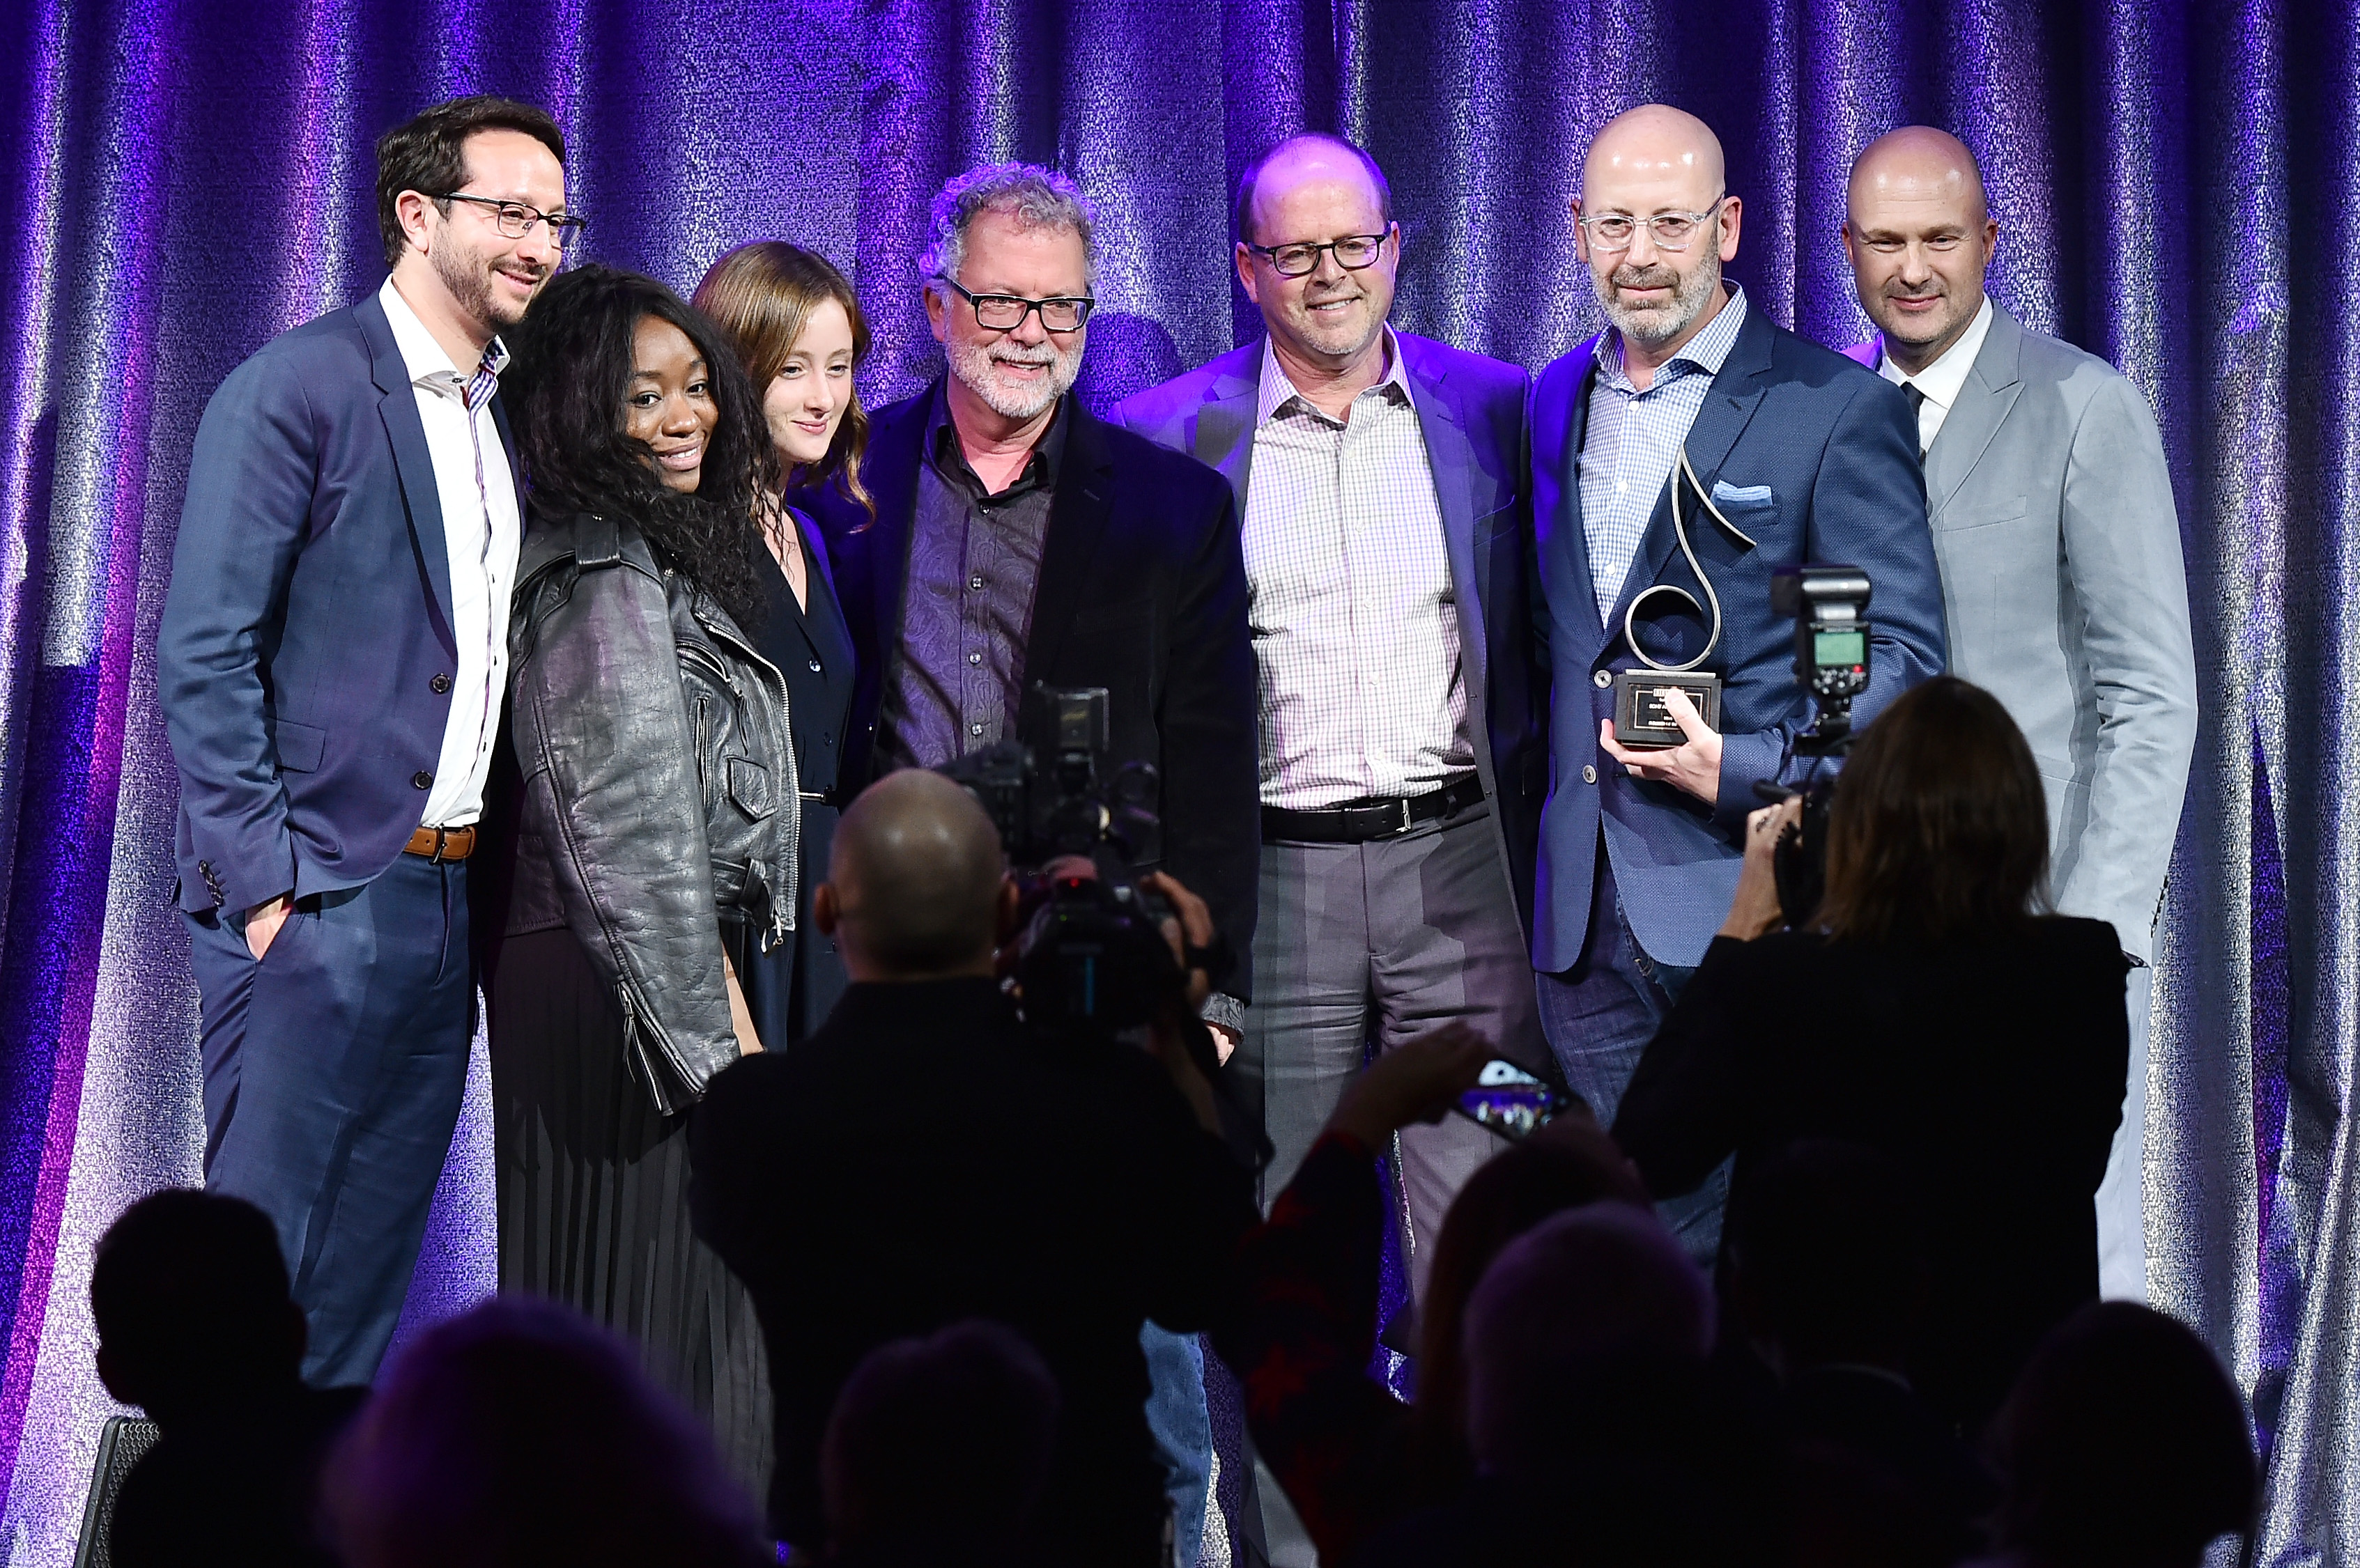 NEW YORK, NY - APRIL 13: Rich Christina (2nd R) and the Sony ATV Sounds team accept the award for 2017 Publisher of the Year during the 2017 SESAC Pop Awards on April 13, 2017 in New York City. (Photo by Theo Wargo/Getty Images for SESAC)